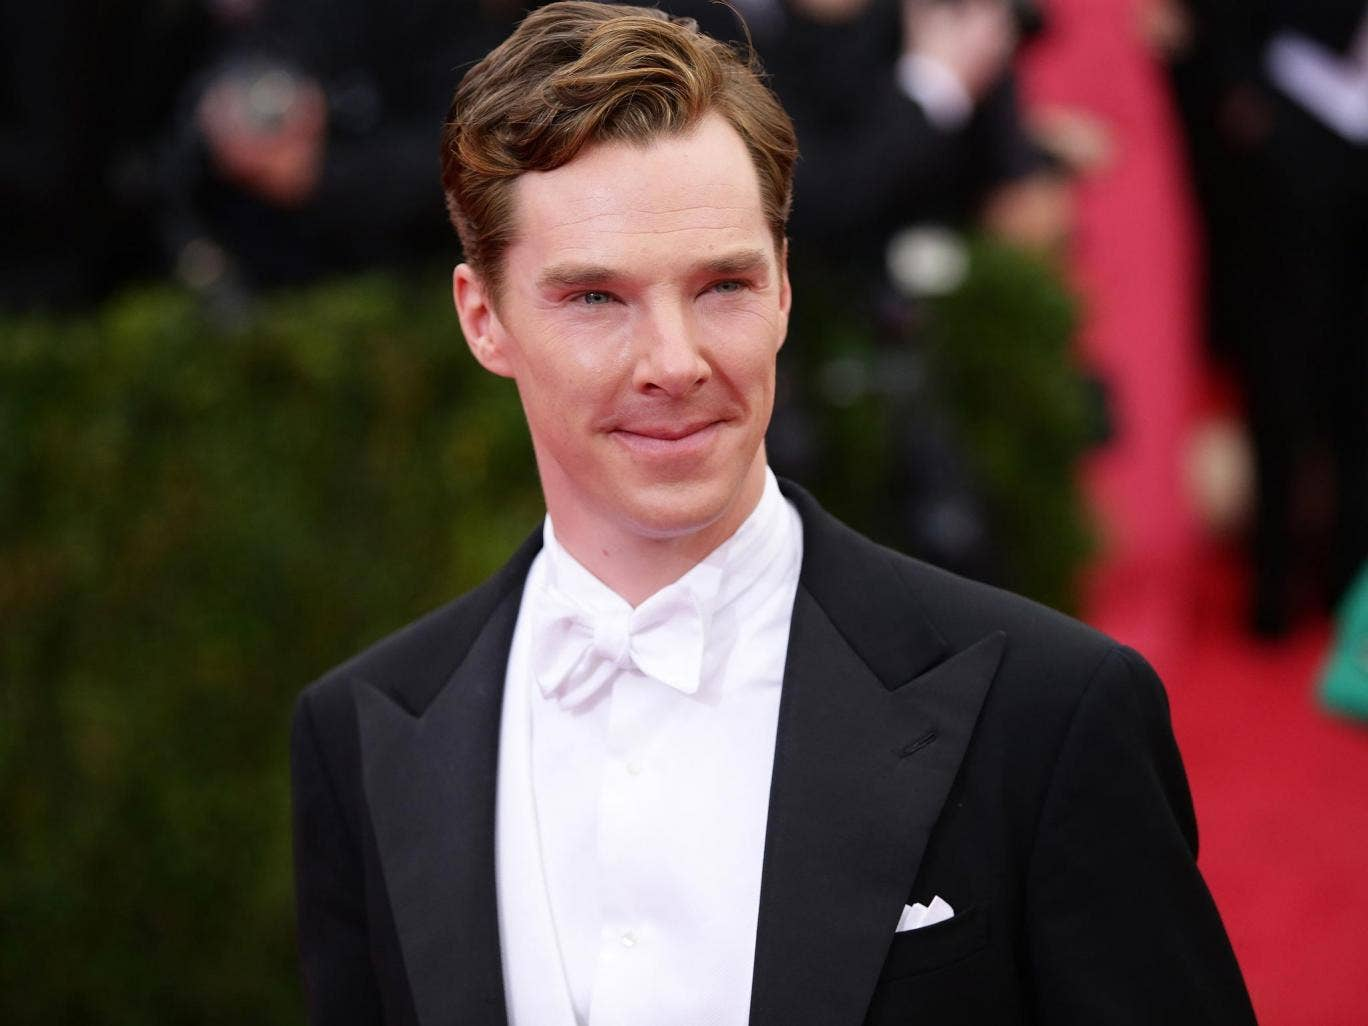 Benedict Cumberbatch is reported to be in final negotiations to play Doctor Strange for Marvel although the casting has not yet been confirmed